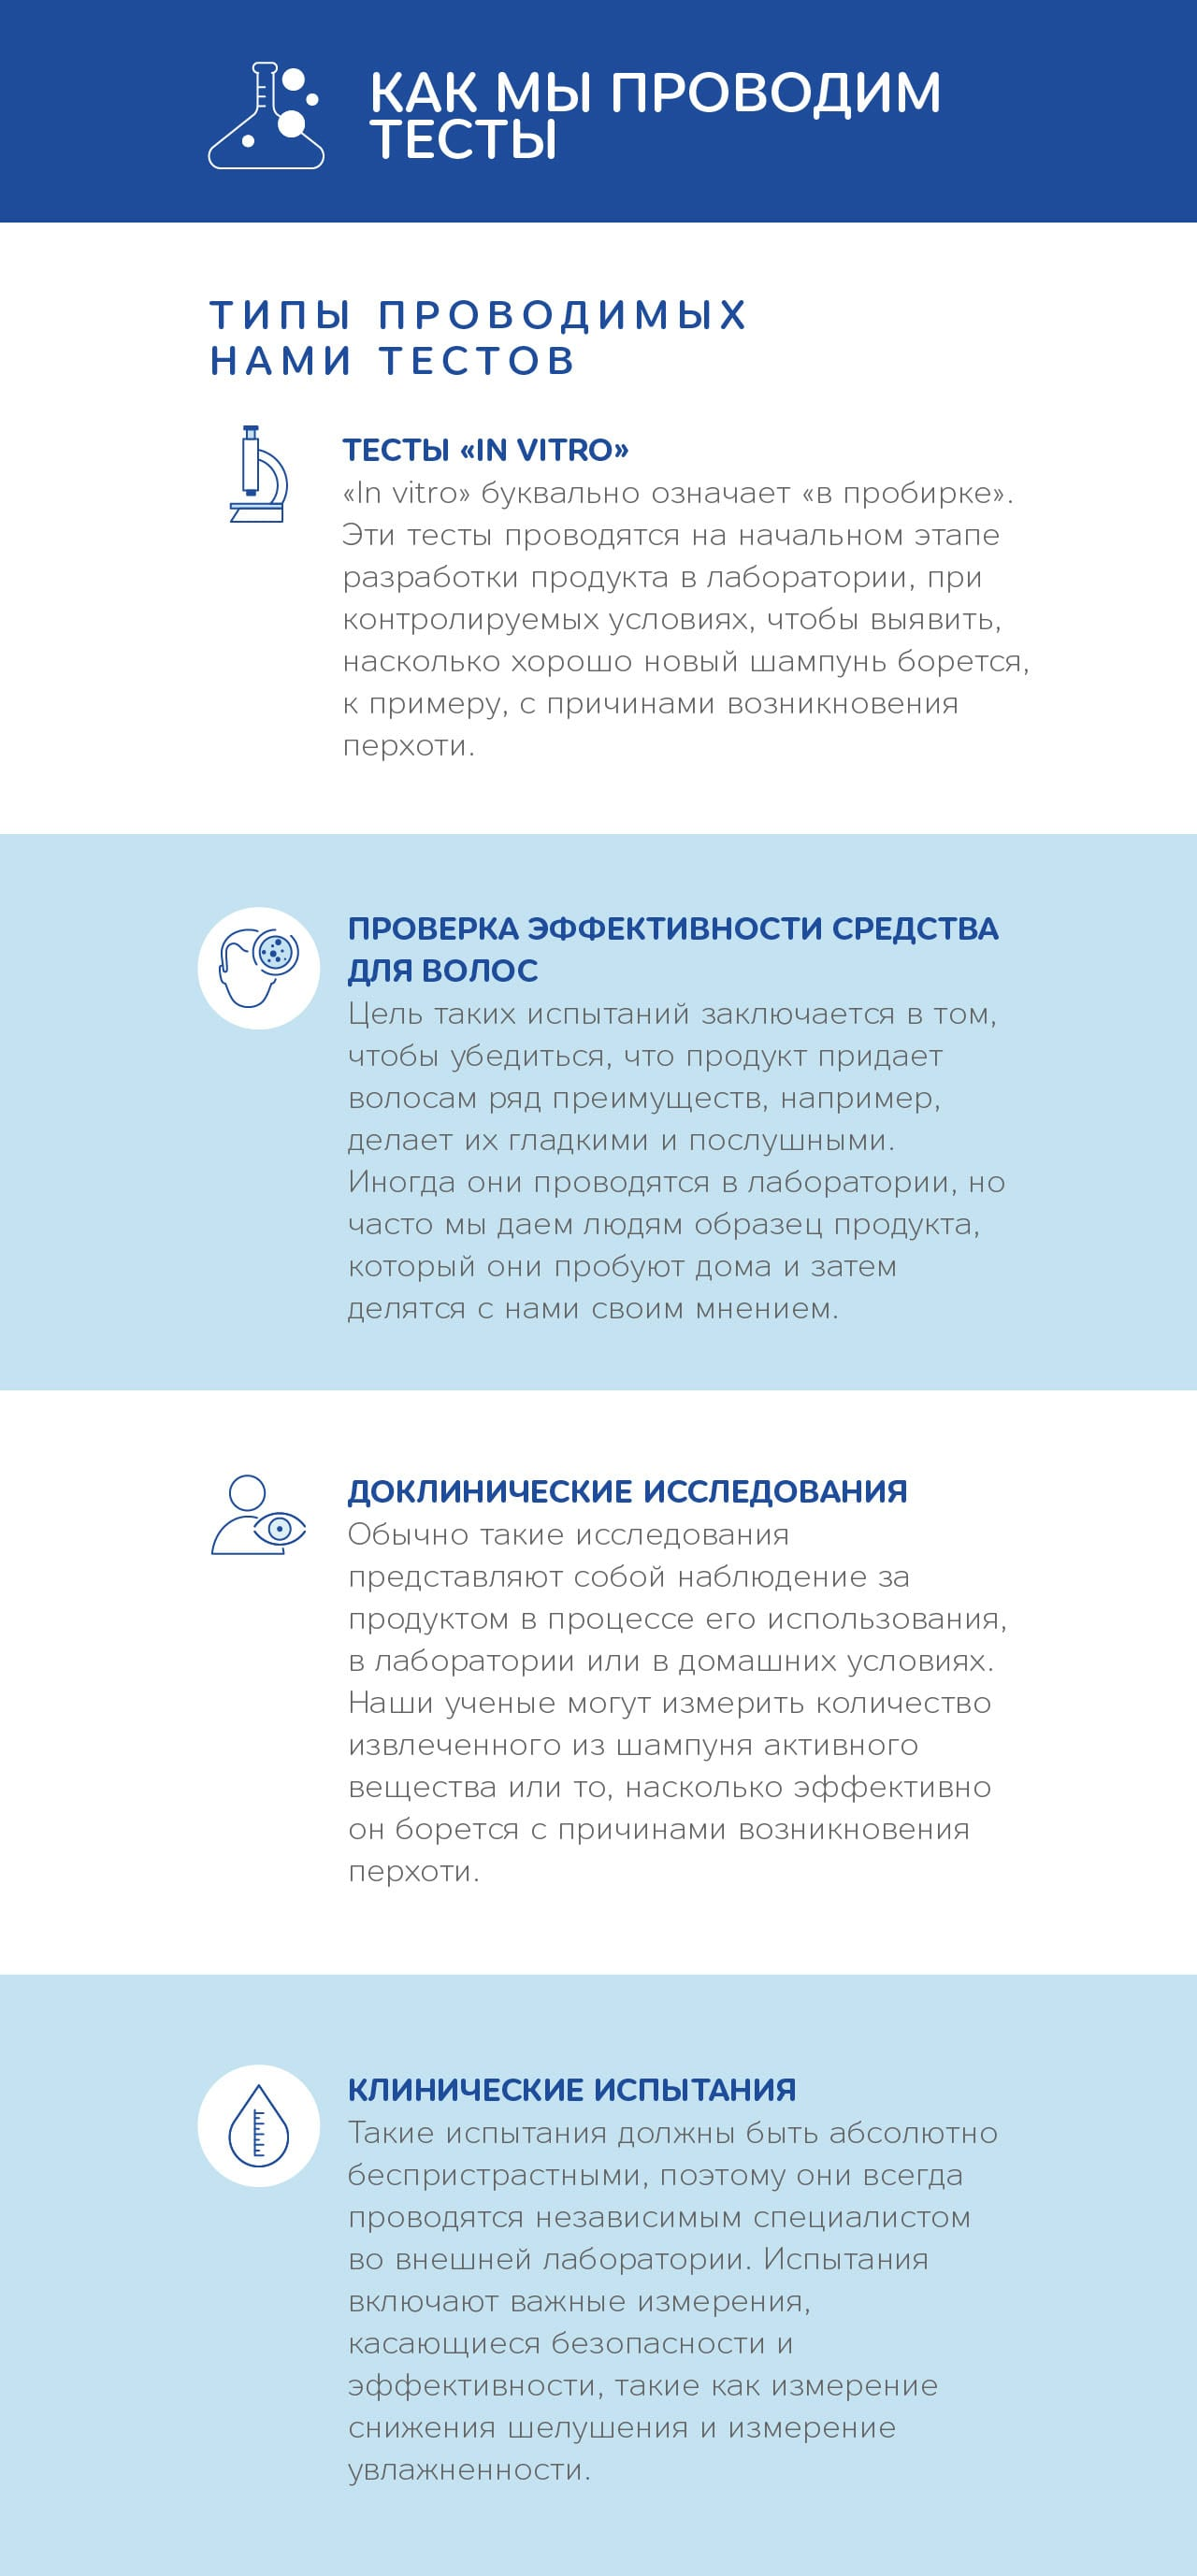 HS_Infographic_How_We_Test_RUS_UK